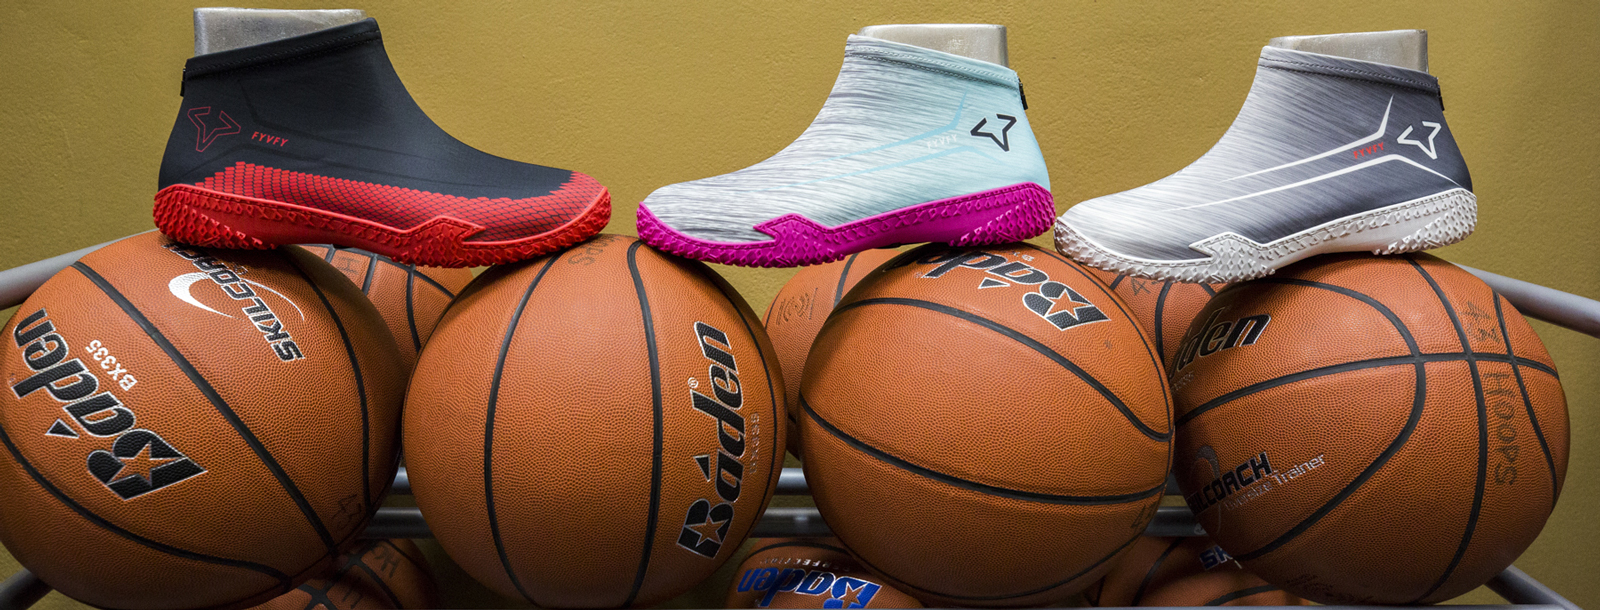 FY-DENY basketball shoe covers